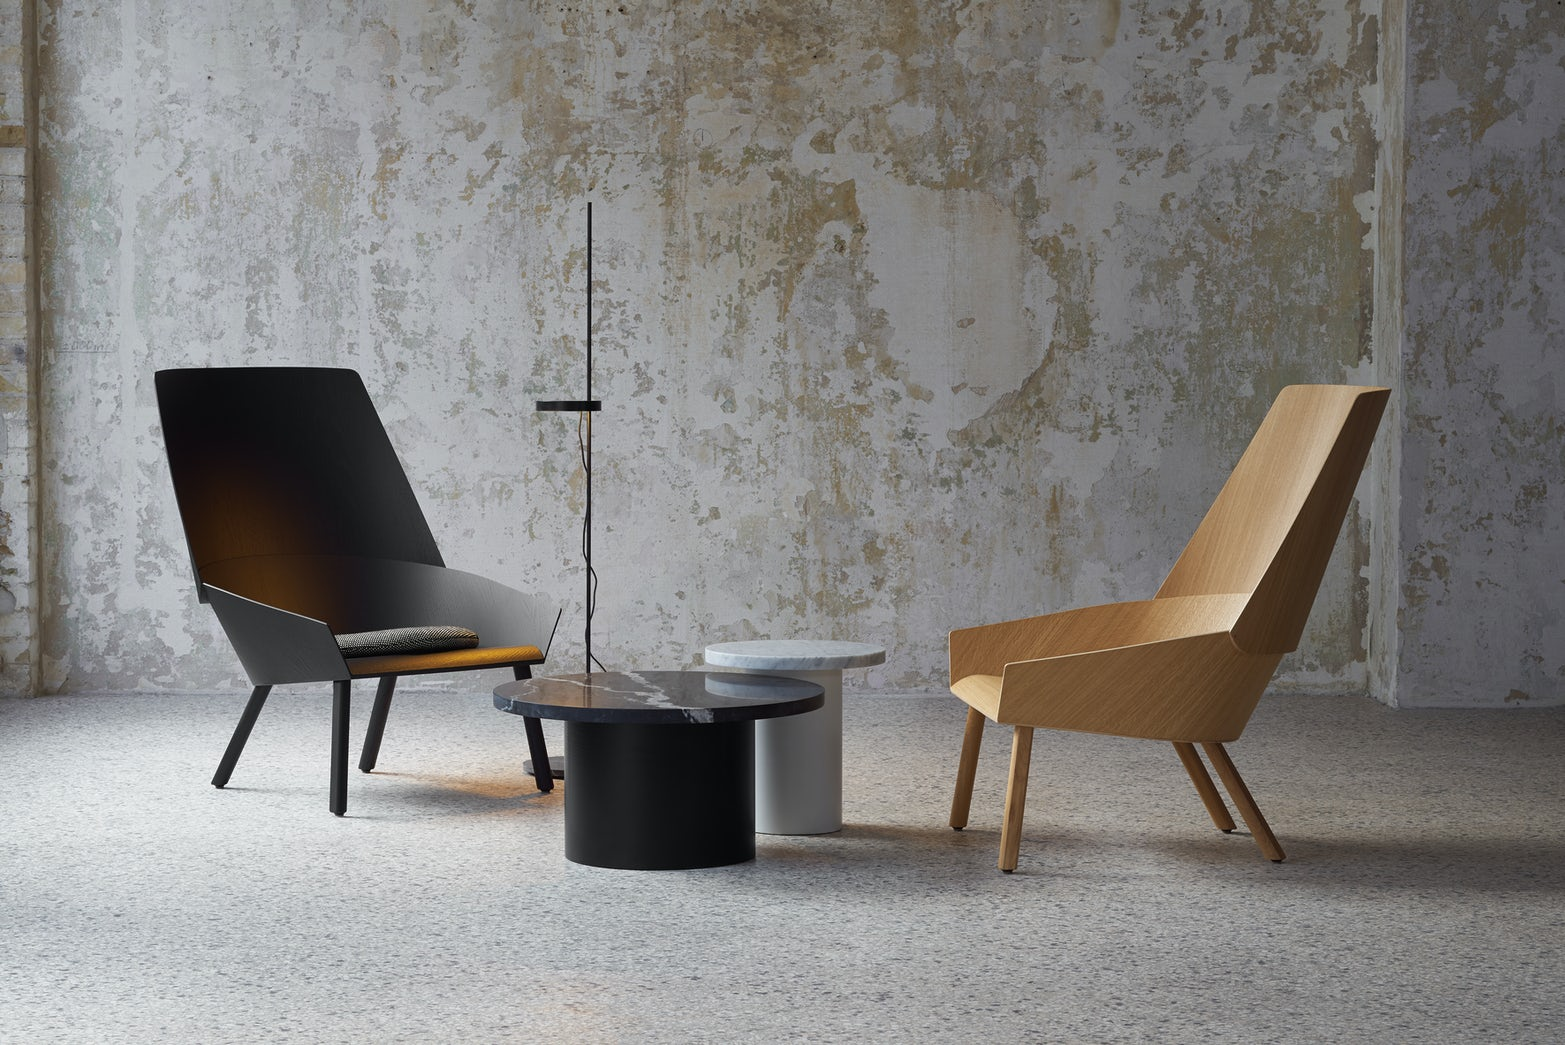 oak and black lacquer e15 eugene lounge chairs with enoki tables